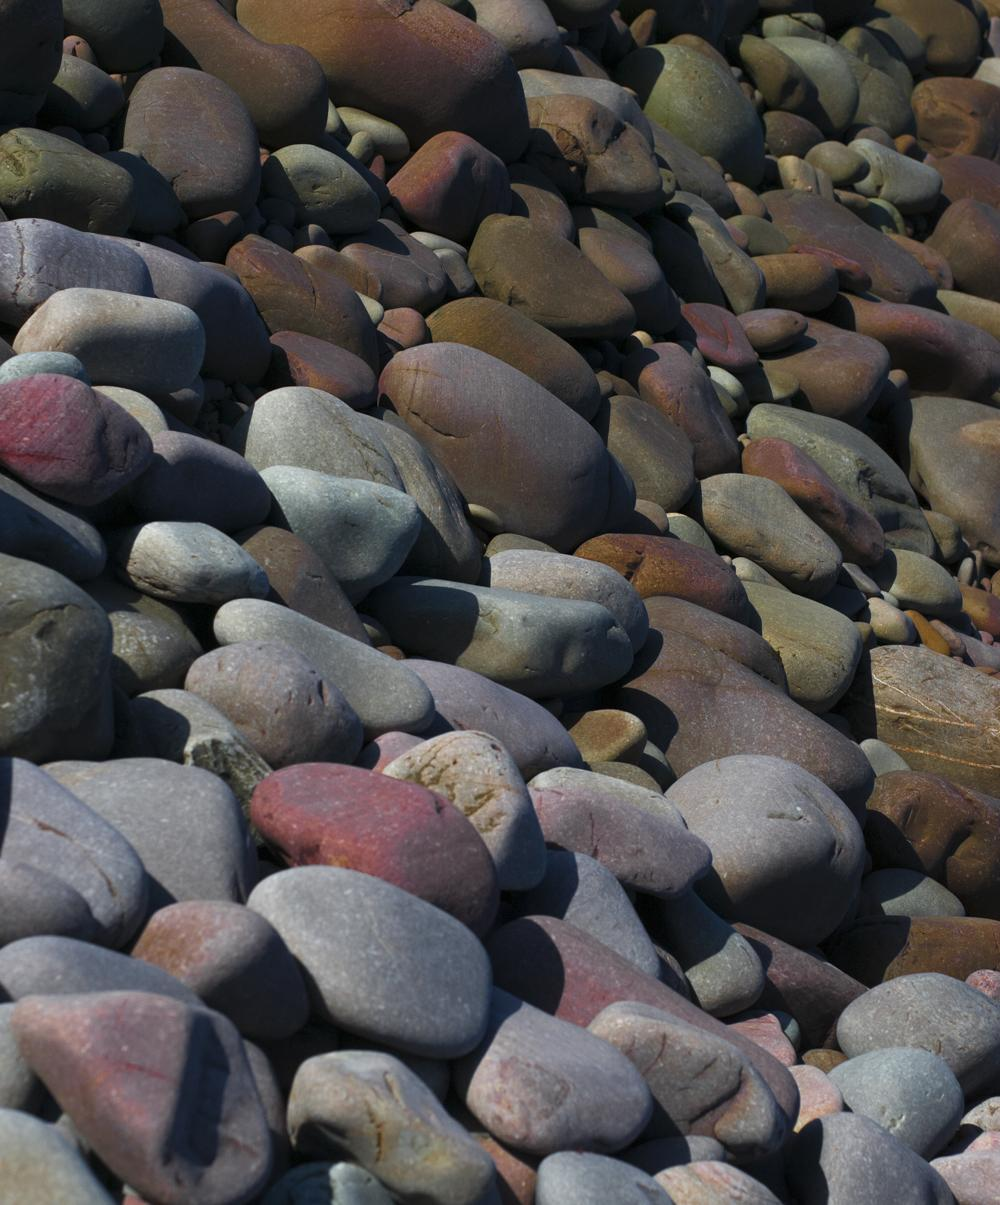 Porlock beach with its colourful stones, shown as relevant inspiration-source.